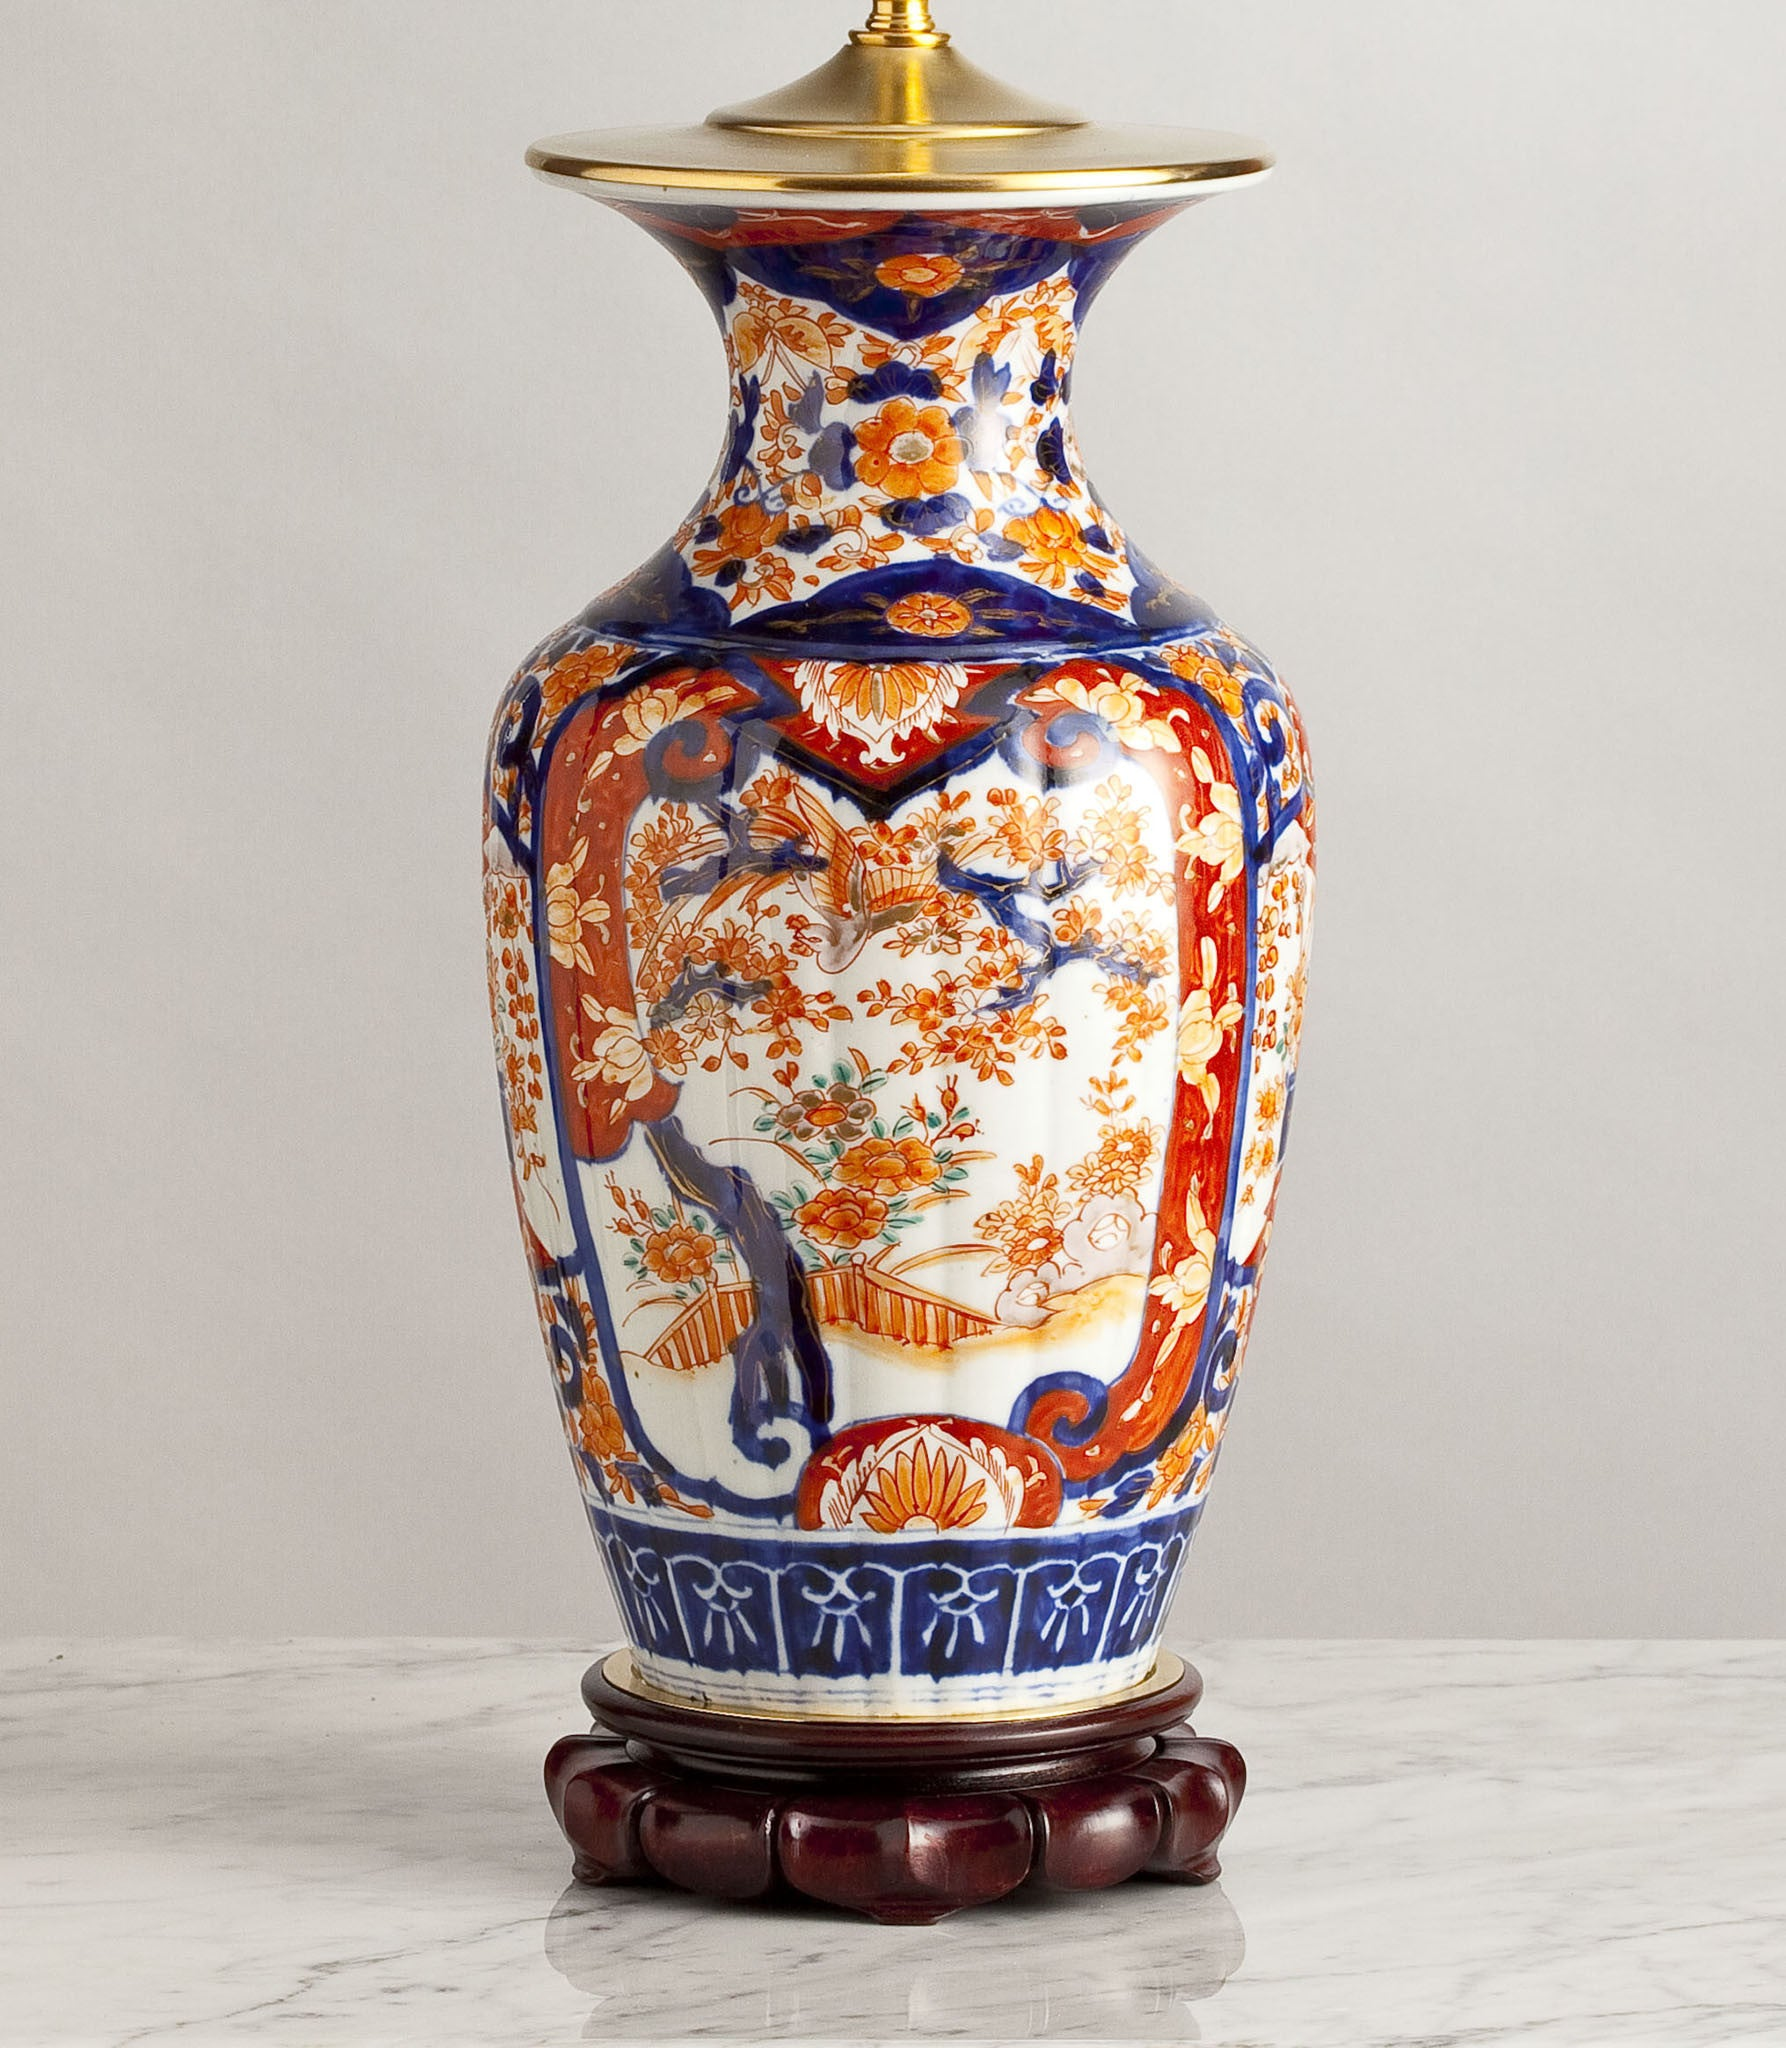 G017  A Tall Japanese Imari Lamp Decorated With Phoenix and Maple Trees - Circa 1880